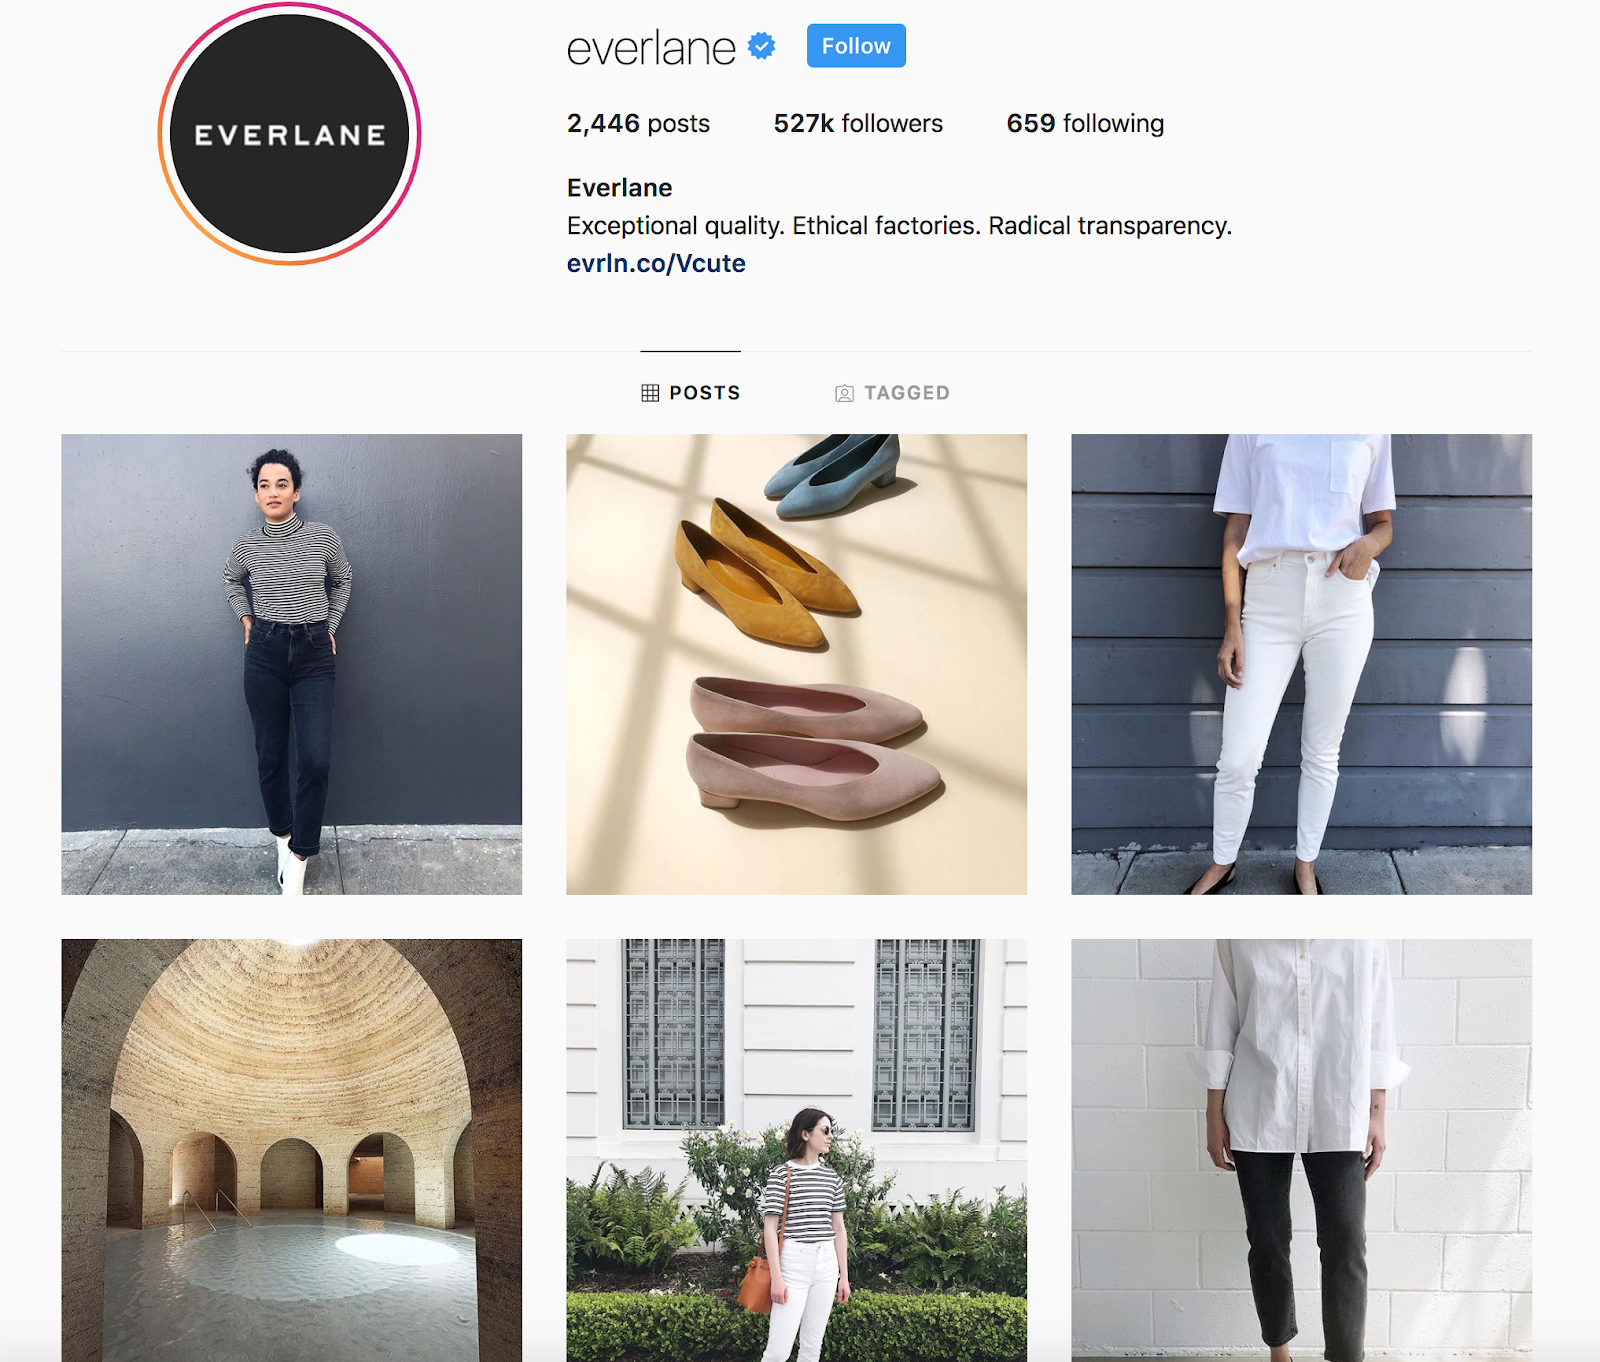 Screenshot showing Everlane